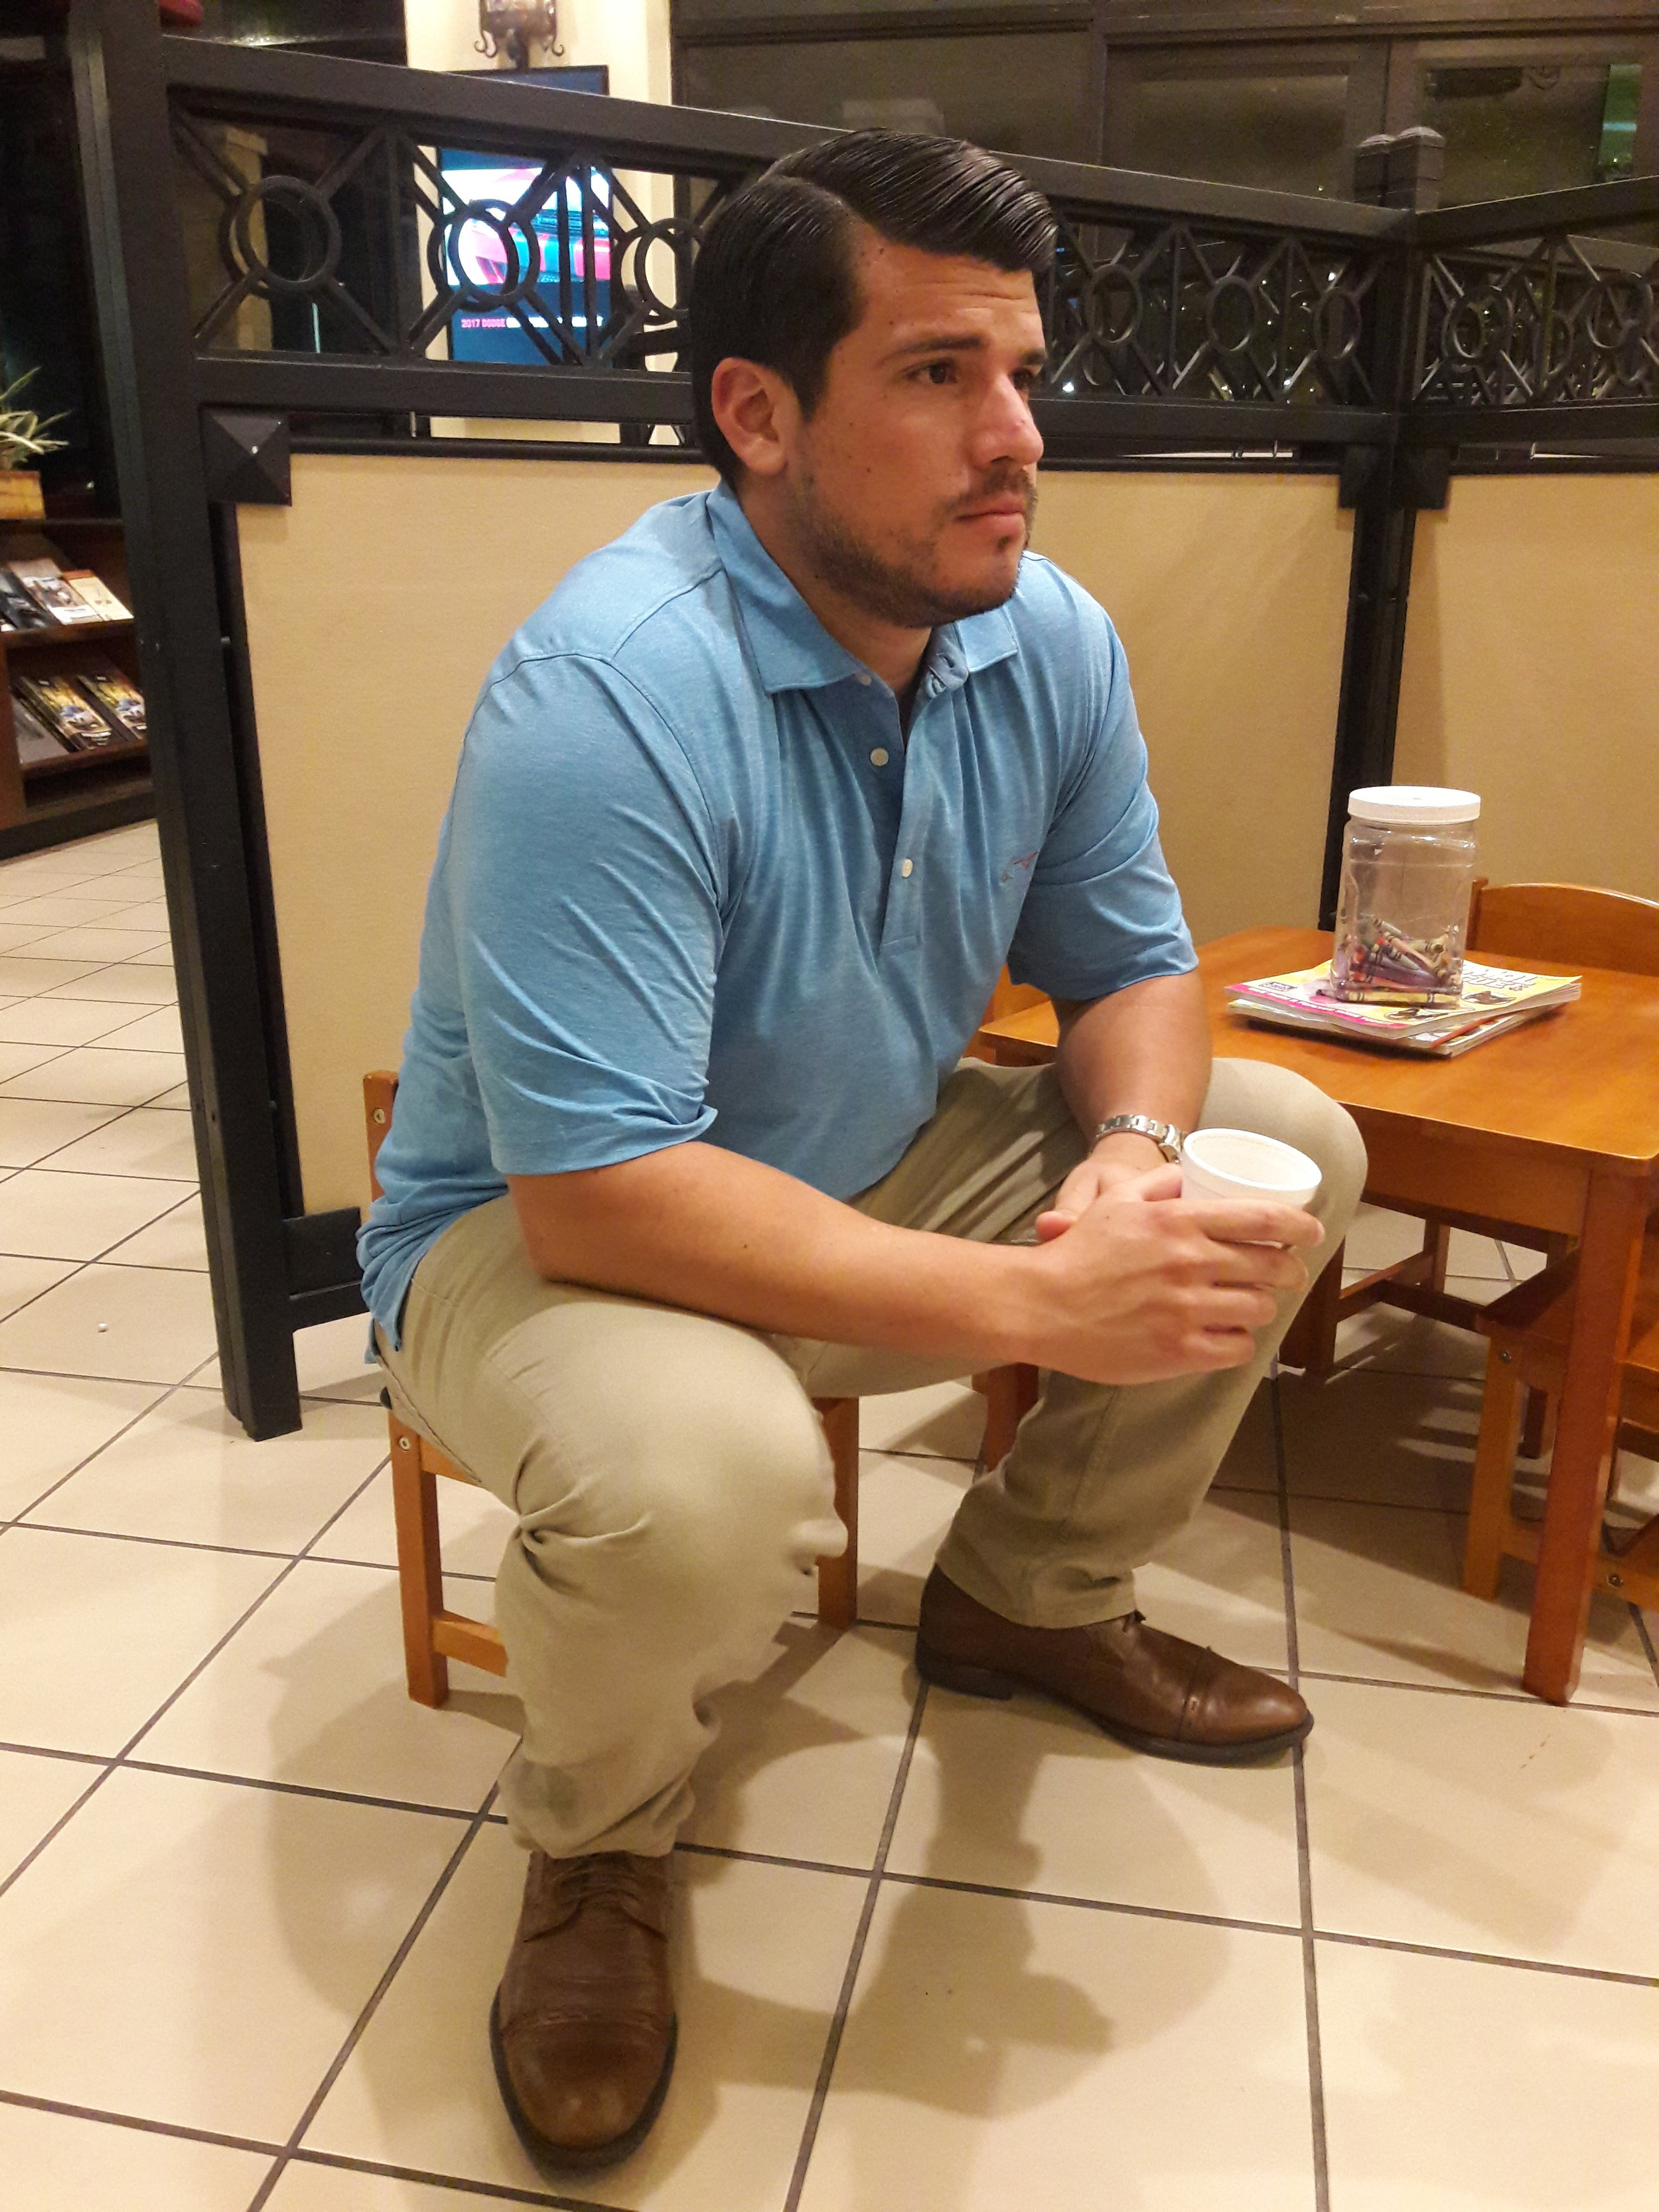 Our President, Juan, in the middle of a negotiation for JSE Financial.